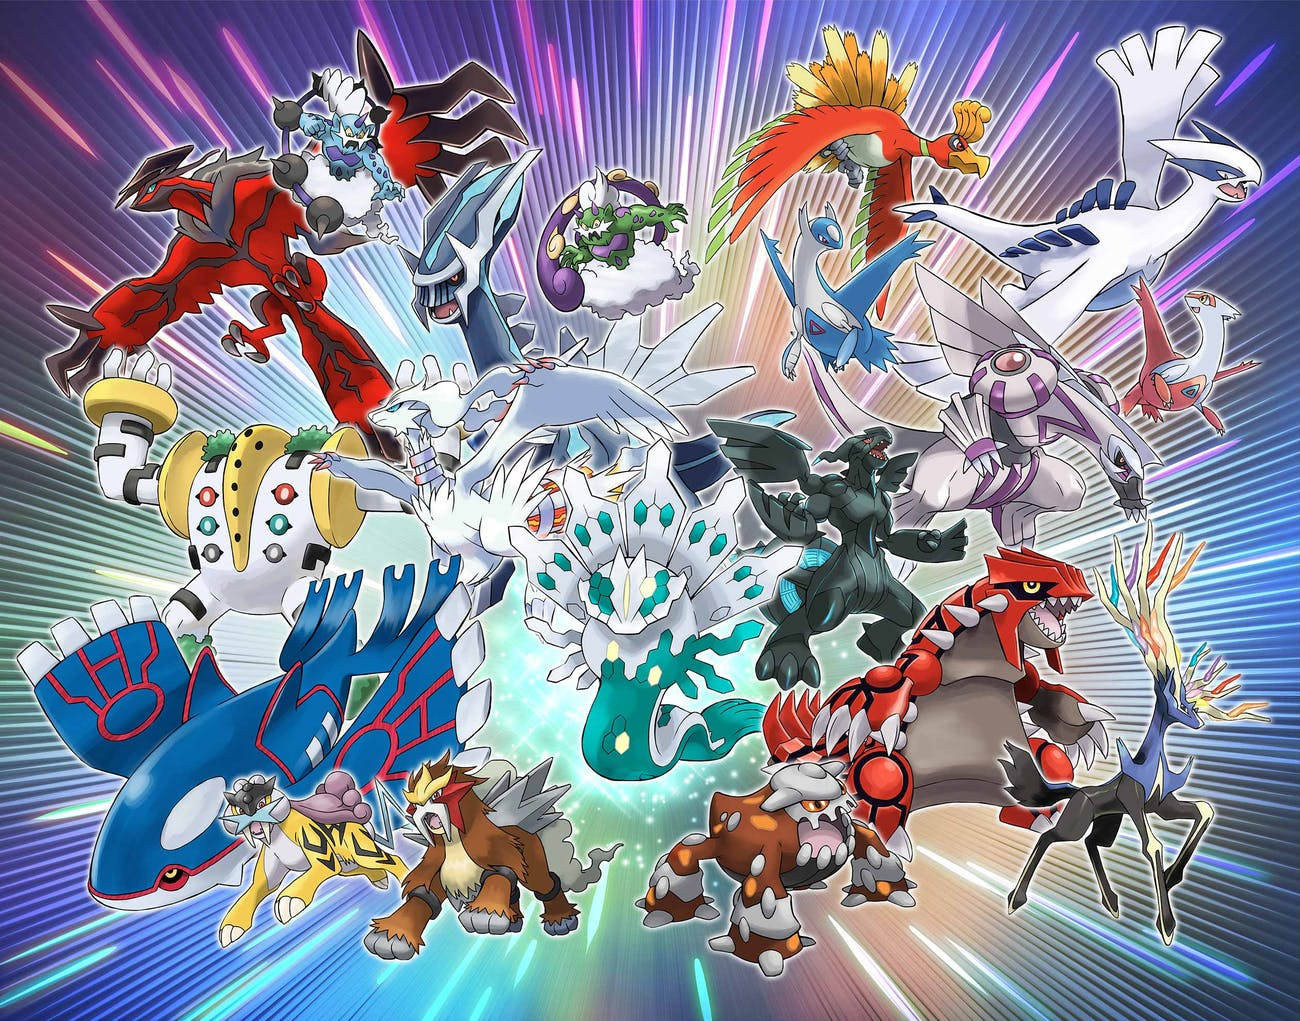 Here are the many Legendary Pokémon you'll be able to get in 2018.